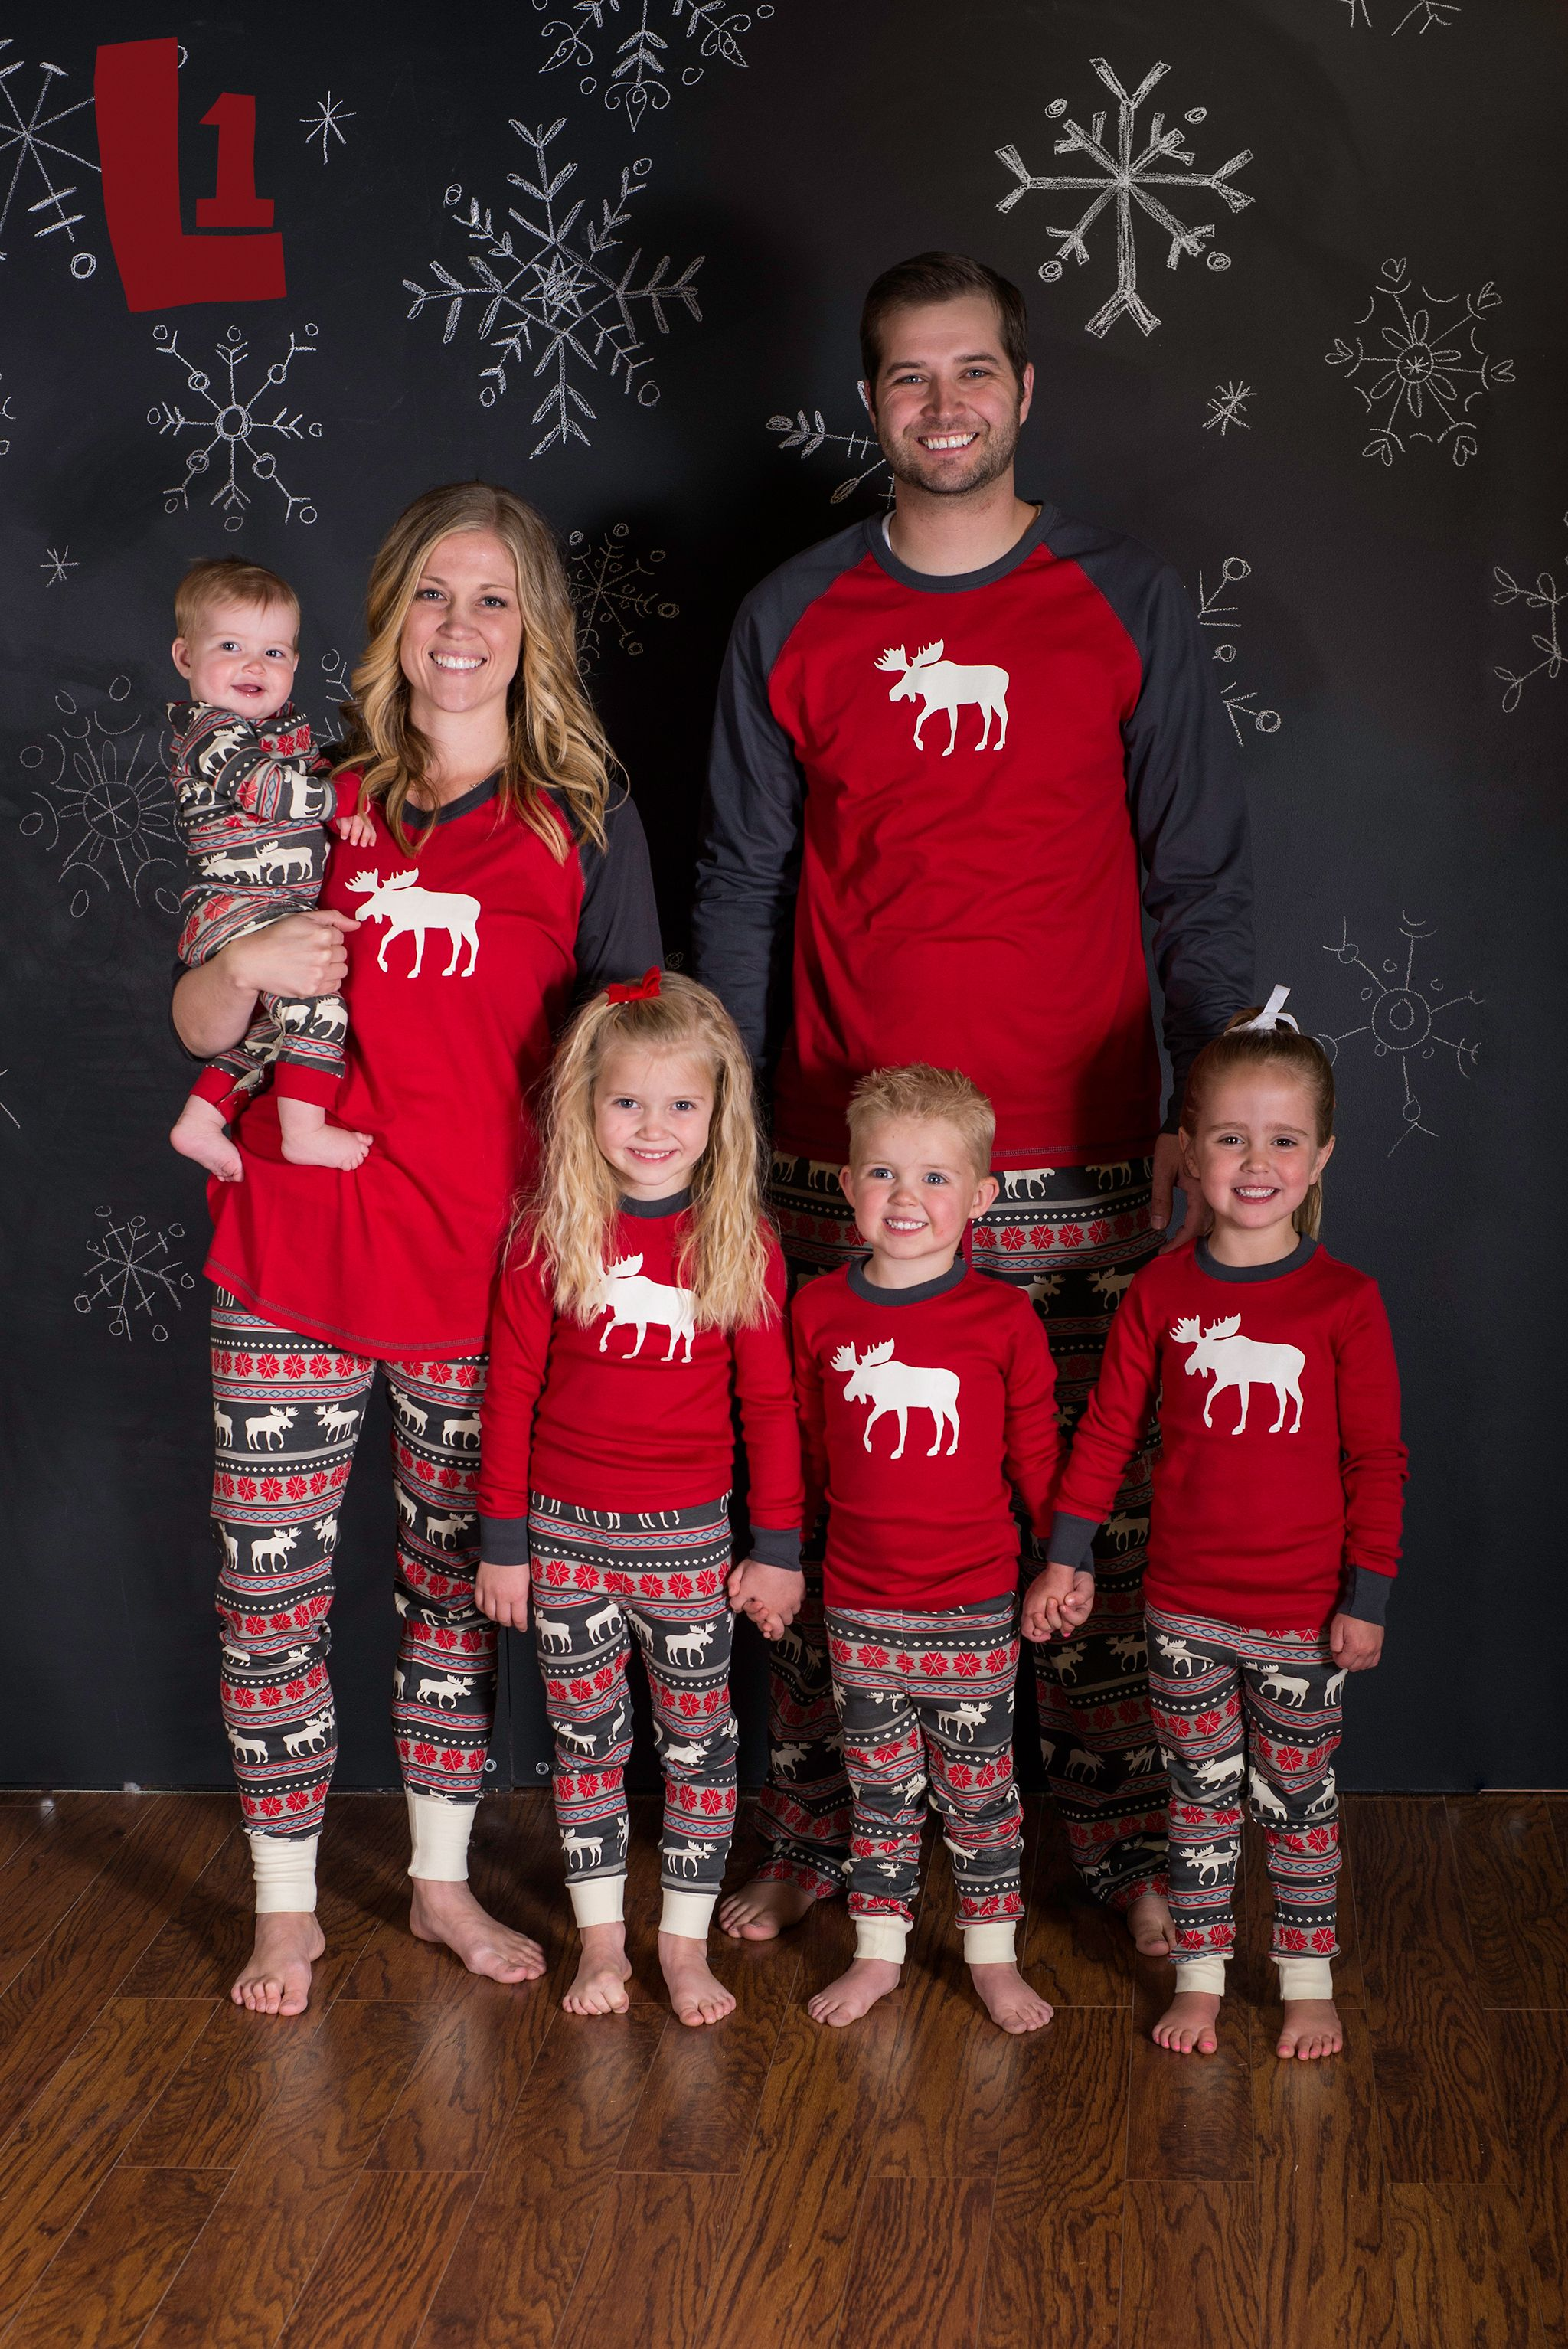 edb2406683e6 15 Cute DIY Christmas Photo Ideas